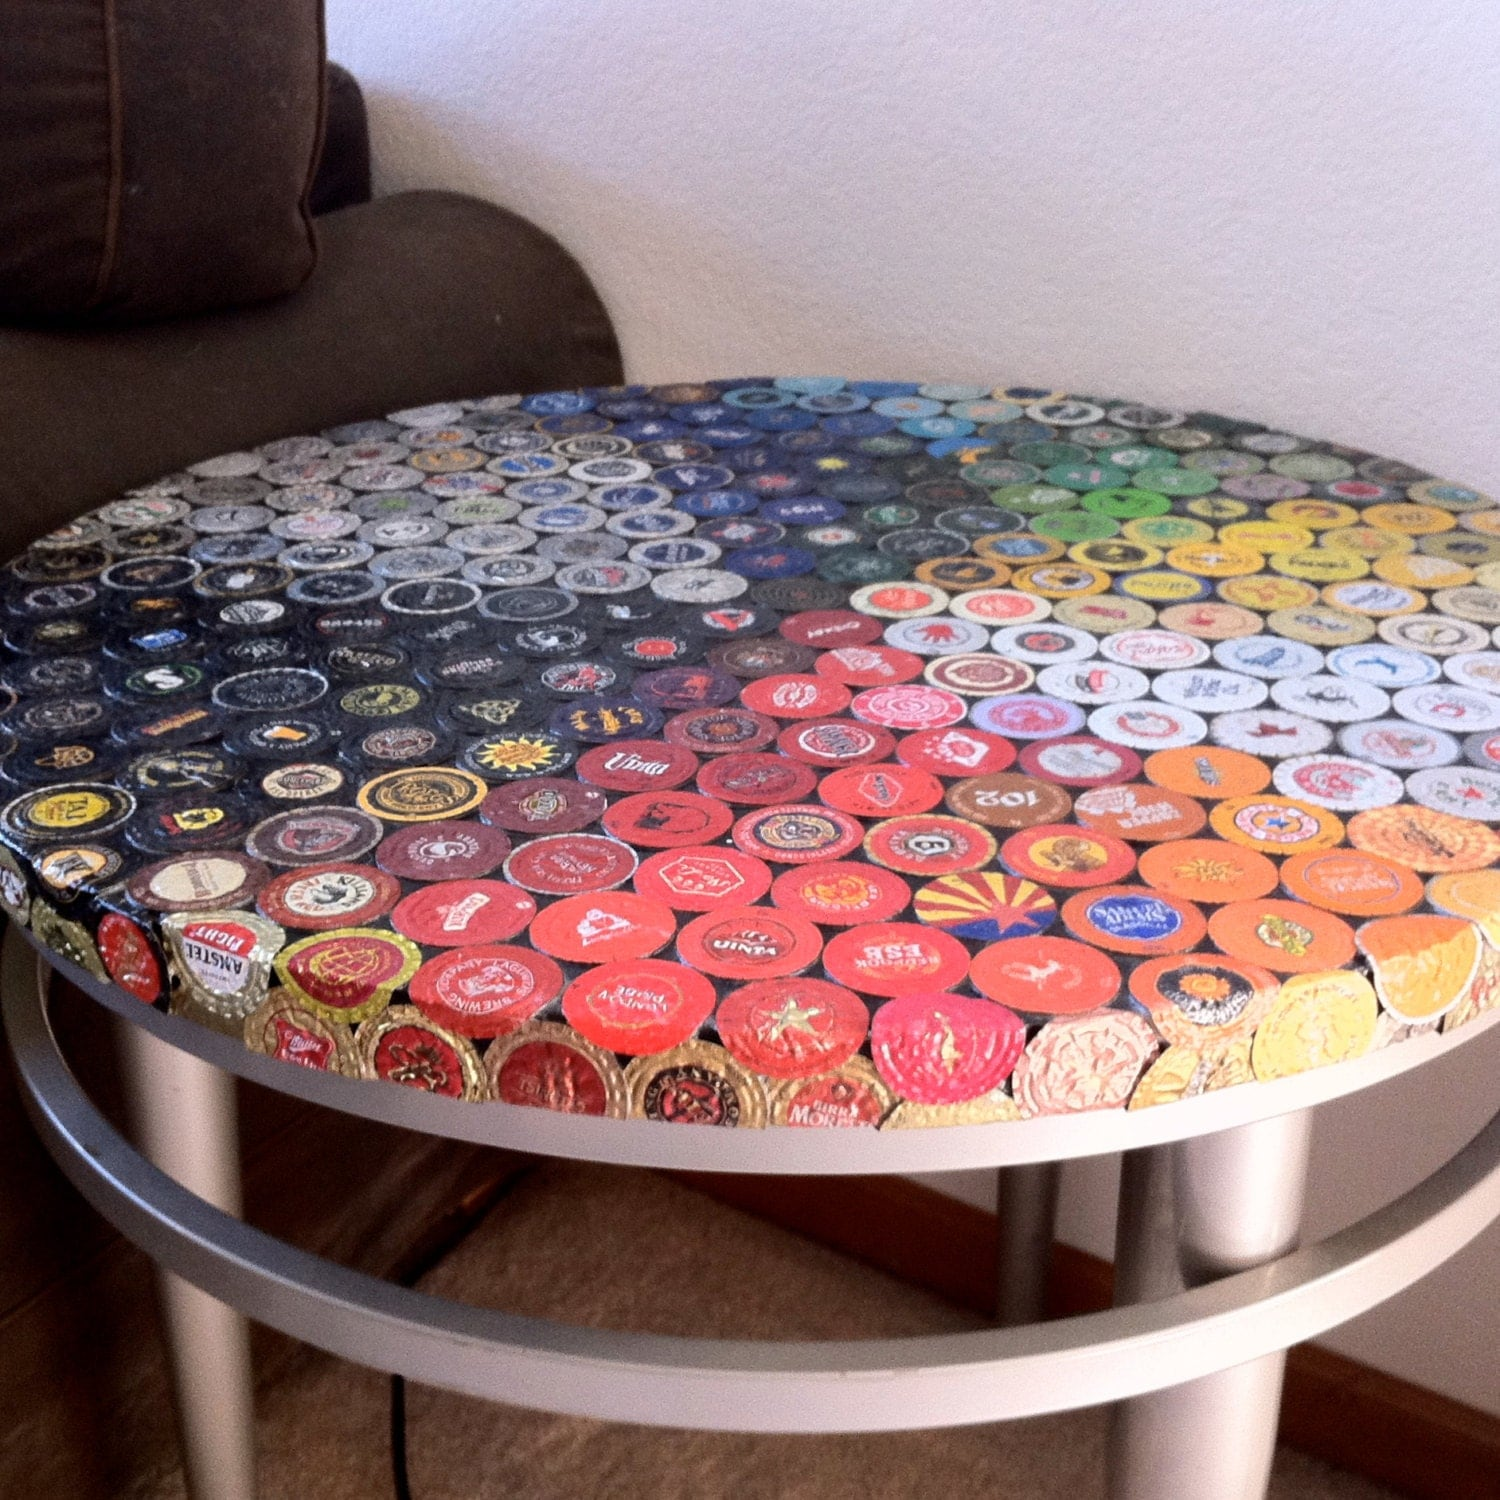 Beer bottle cap table foto bugil bokep 2017 for What to make with beer bottle caps